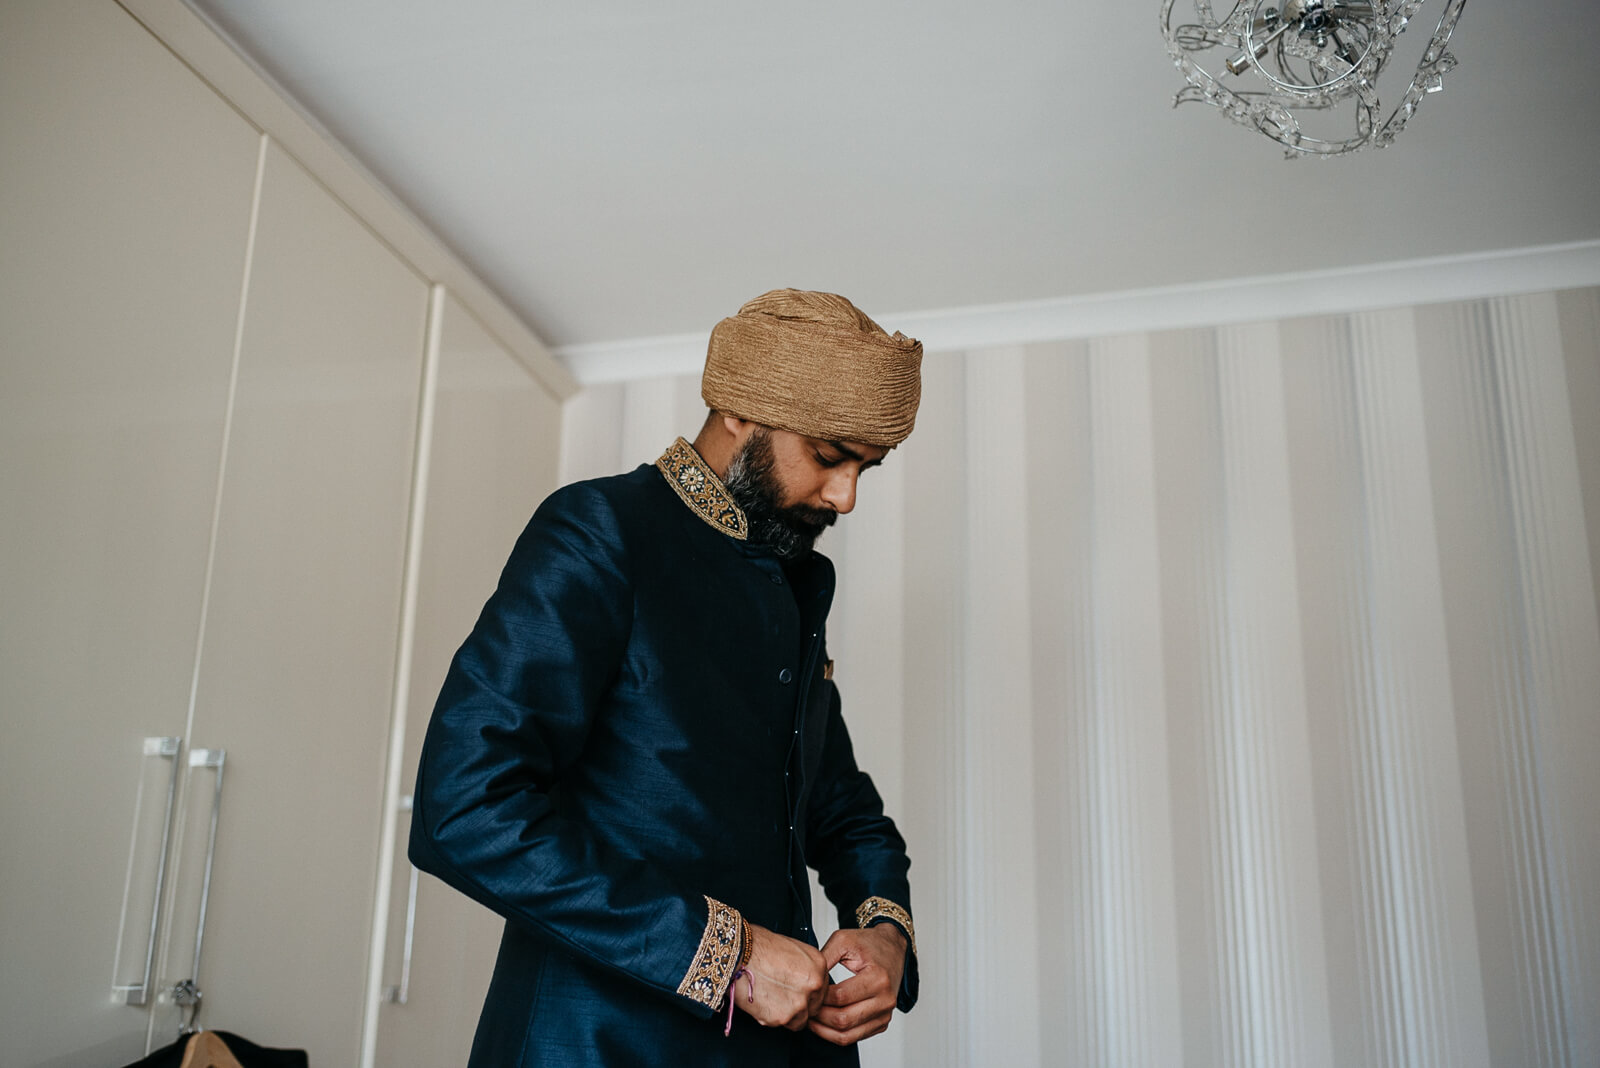 London Indian groom getting dressed in his navy silk wedding suit